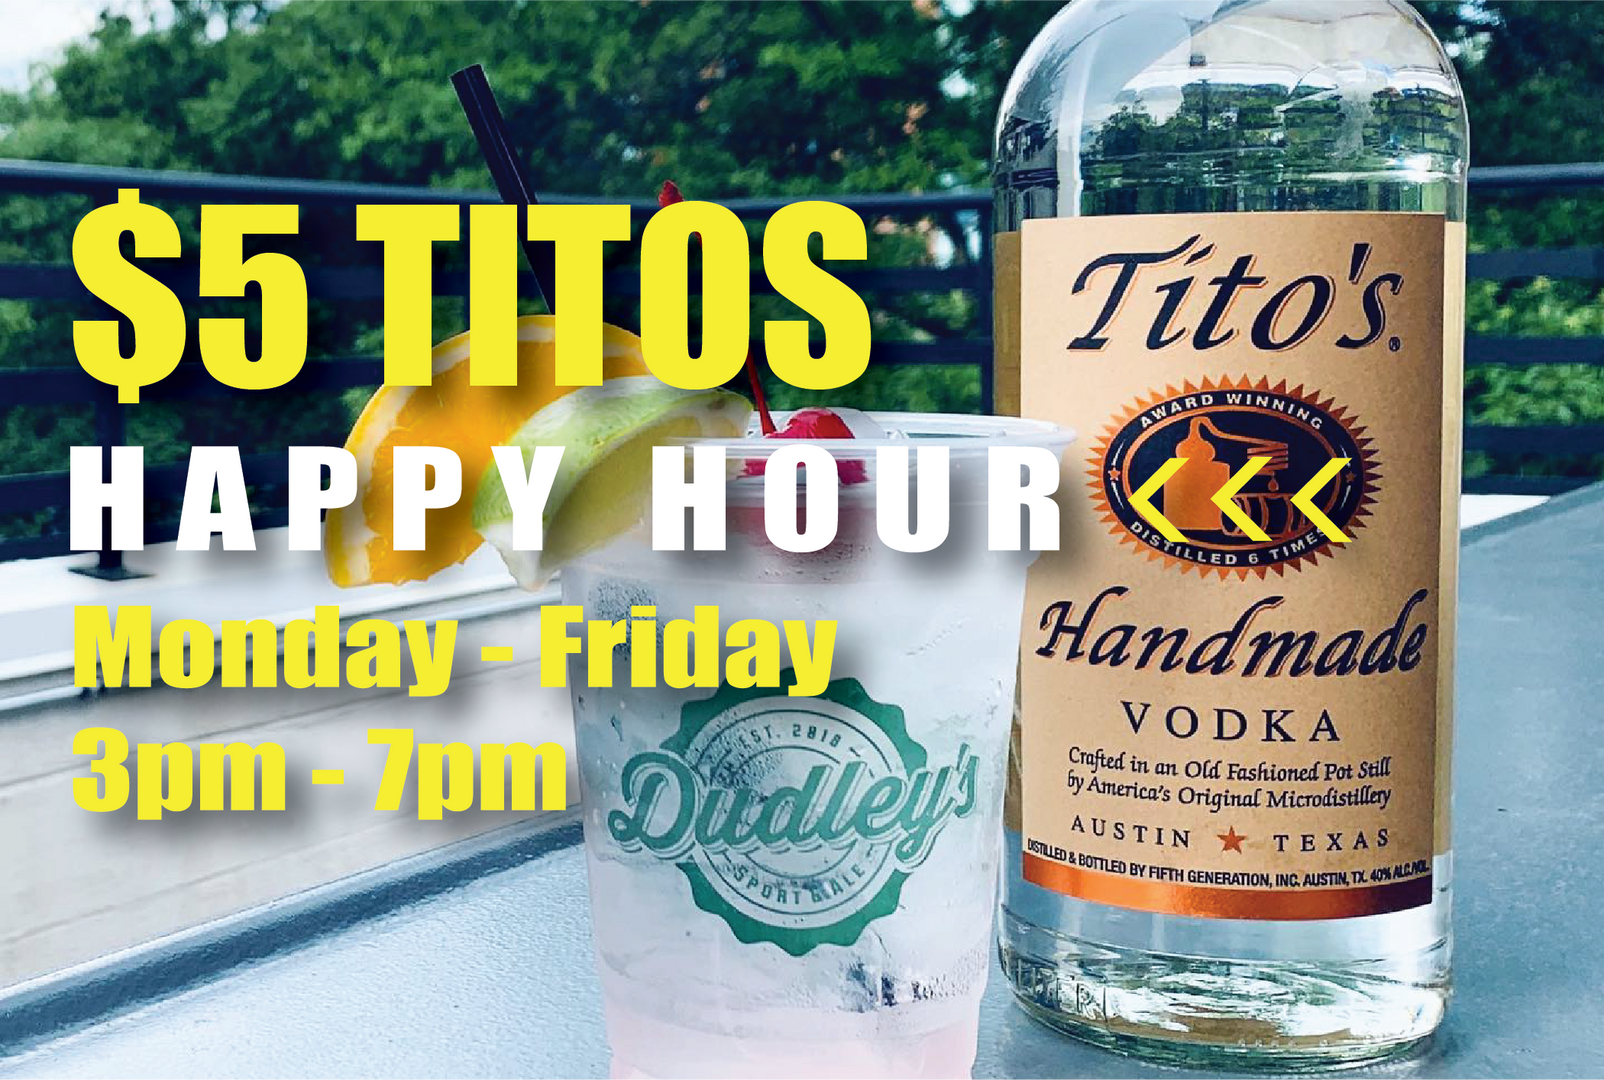 $5 Titos Happy Hour